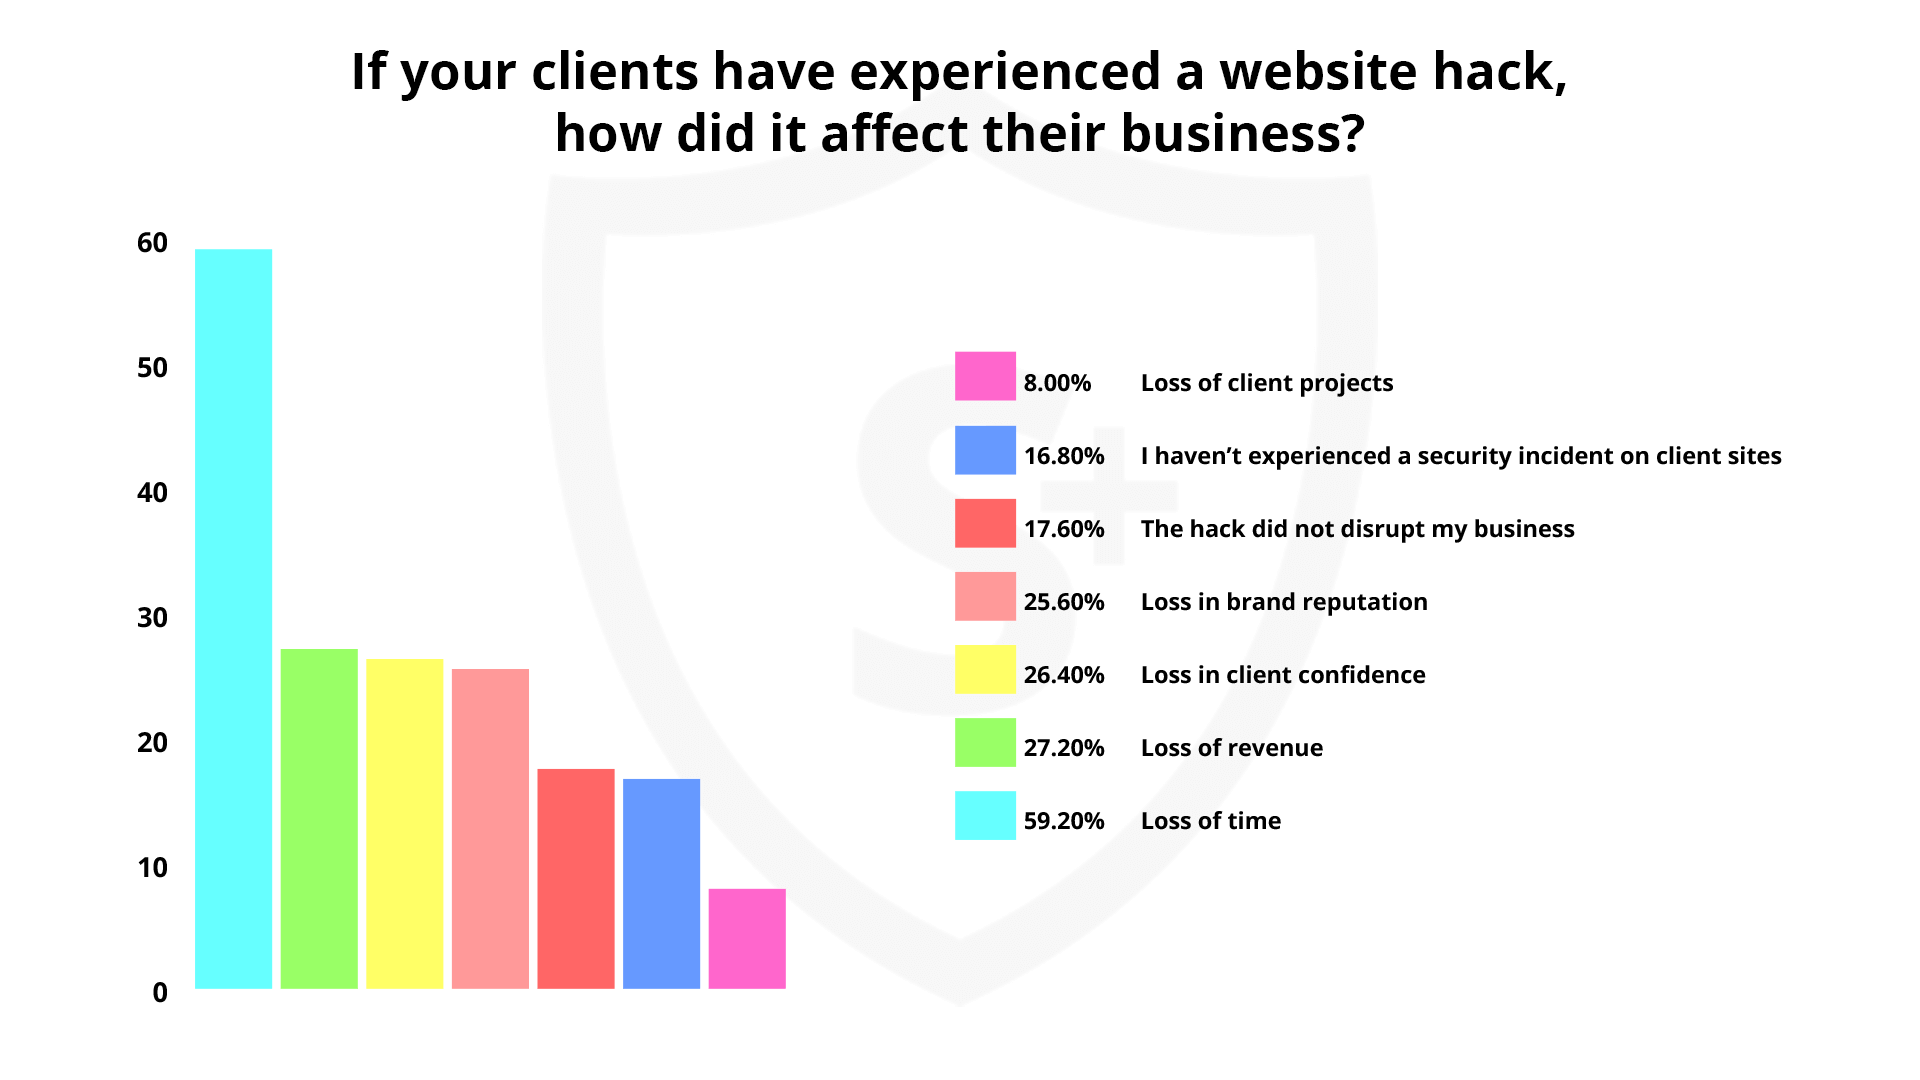 Loss of time was one of the largest consequences of a hacked website.